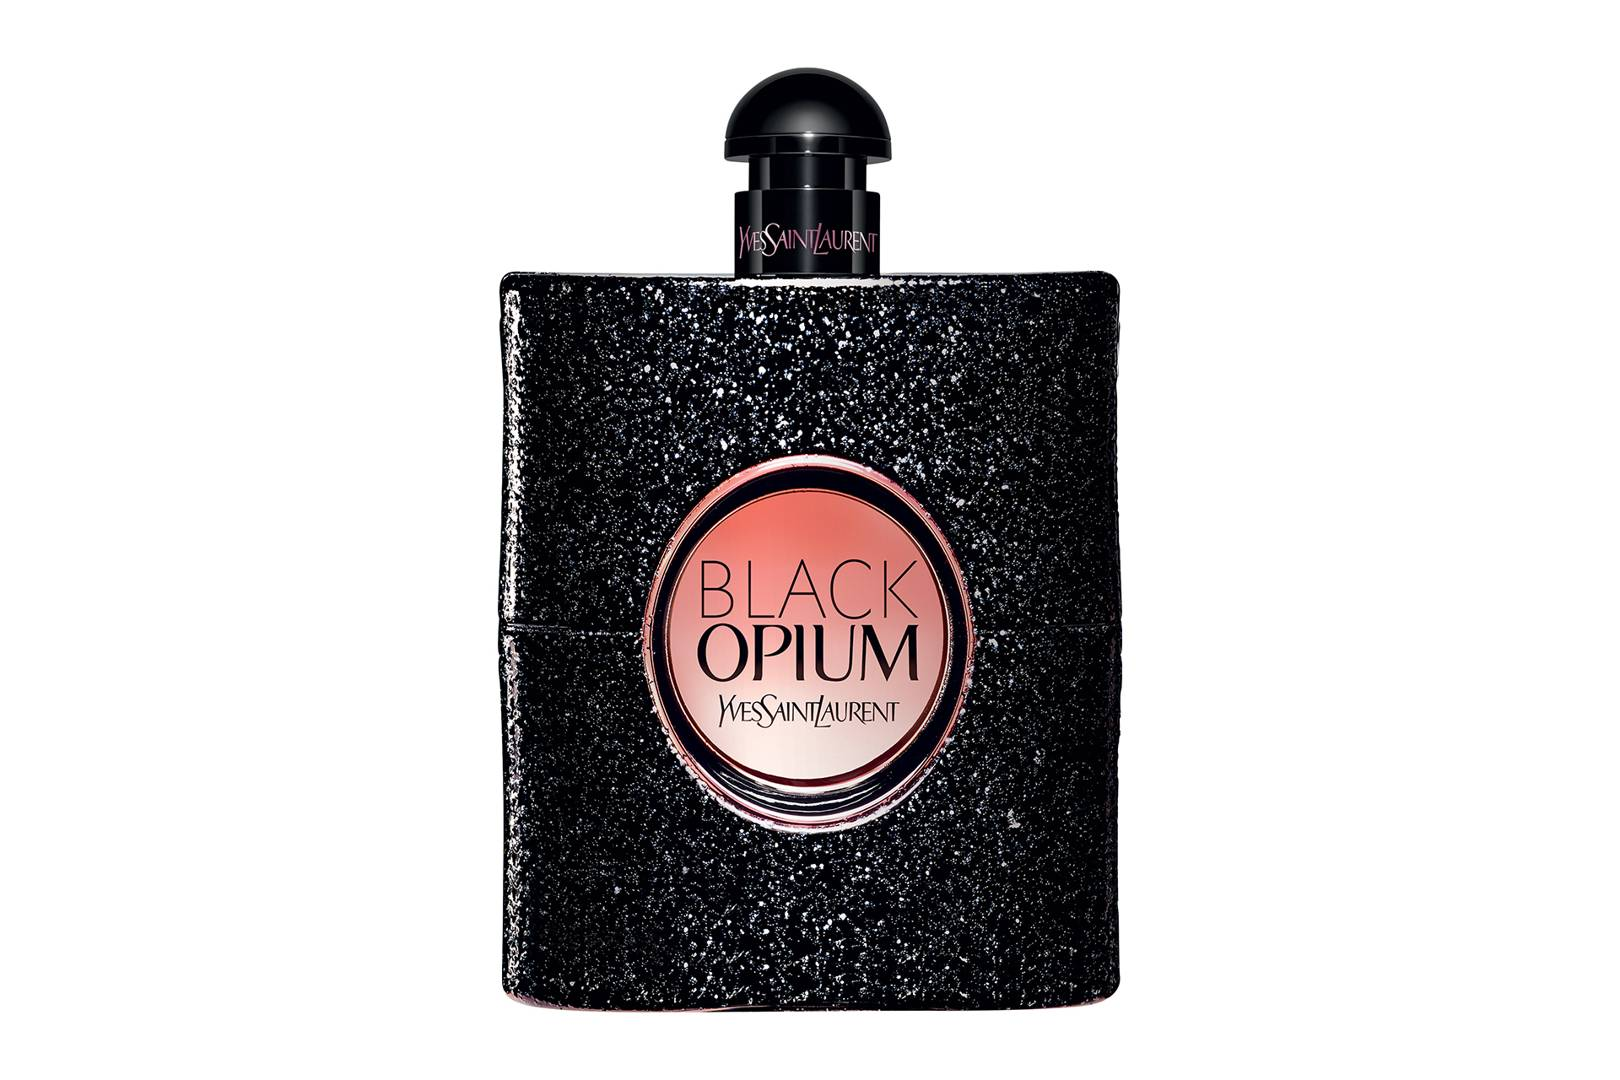 The Best Perfumes For Women Bestselling Fragrances Glamour Uk